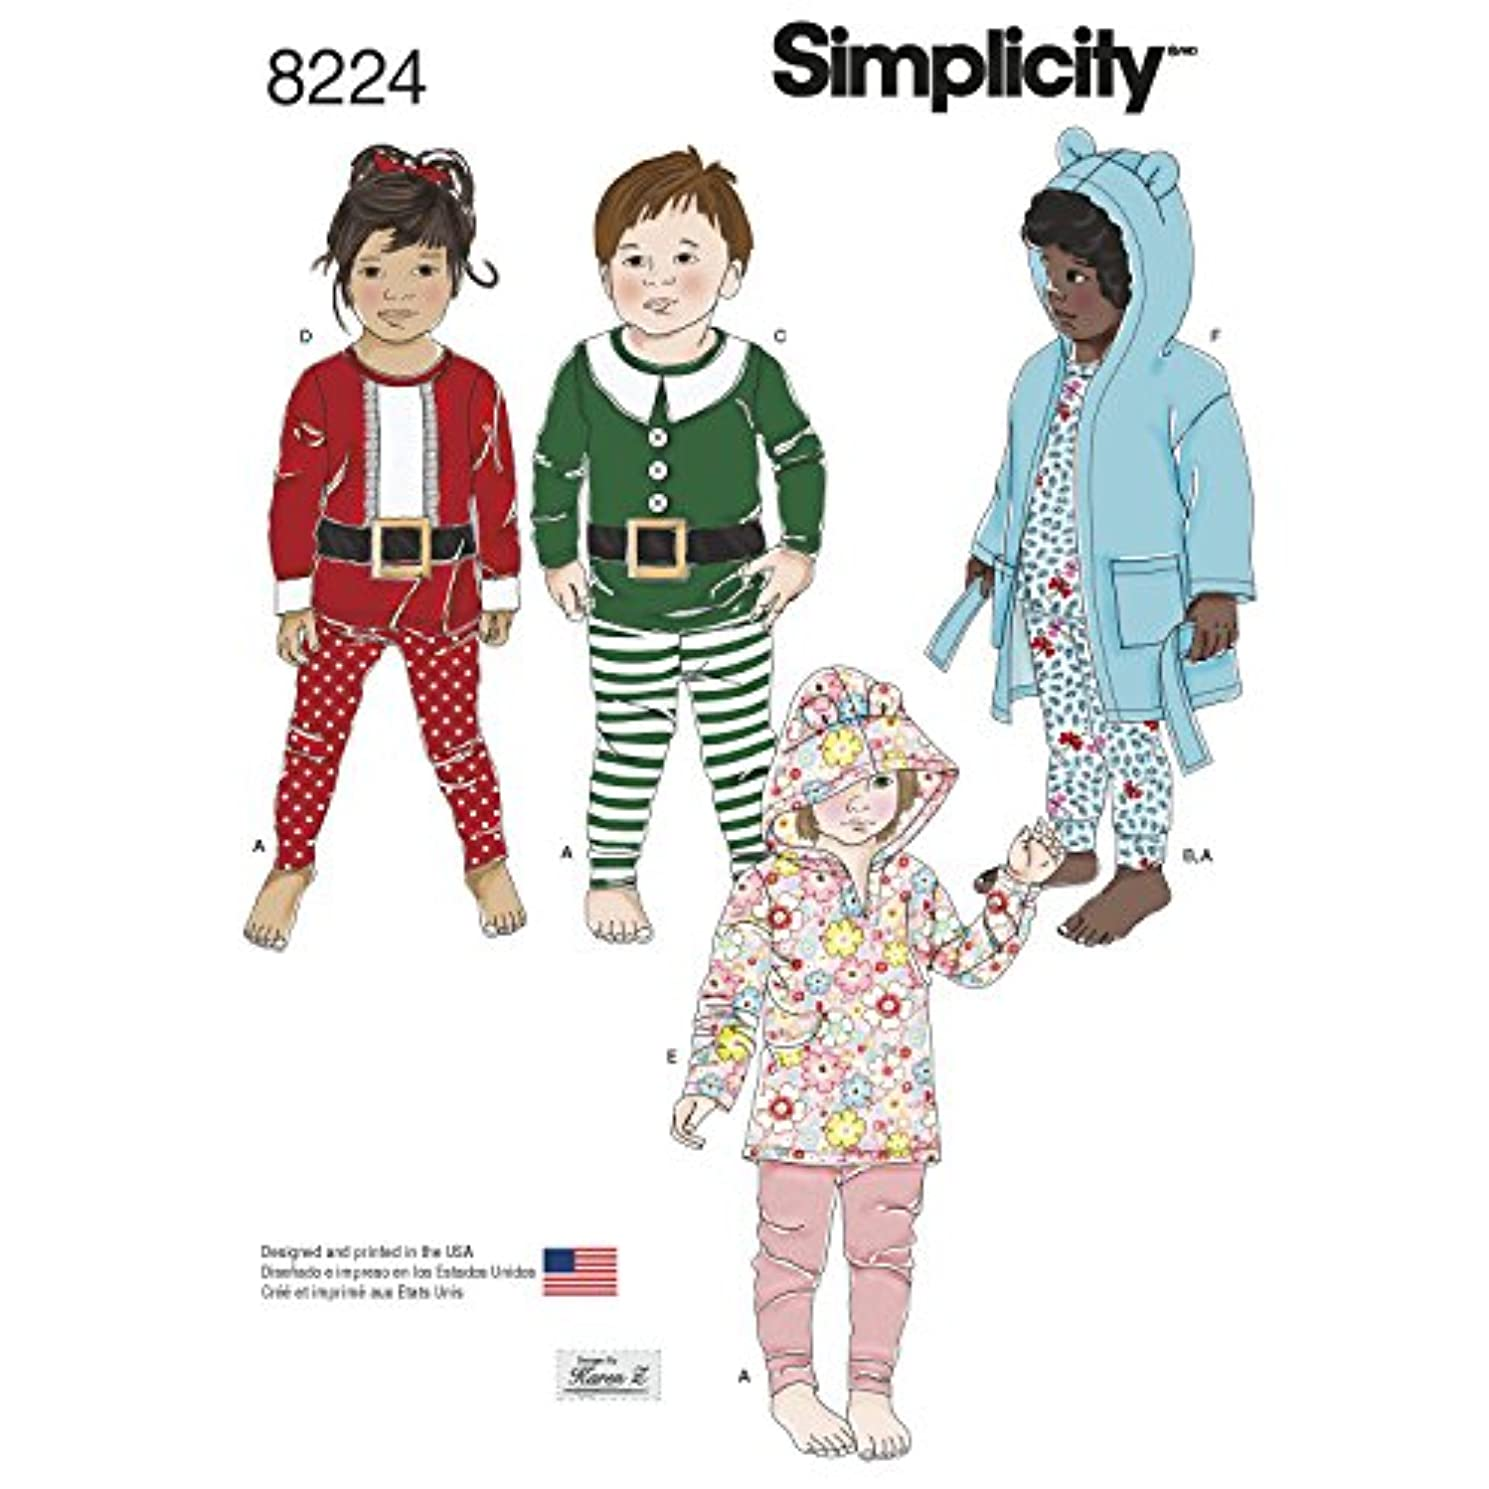 Simplicity Creative Patterns Simplicity Pattern 8224 Toddler's Robe and Knit Pants and Tops